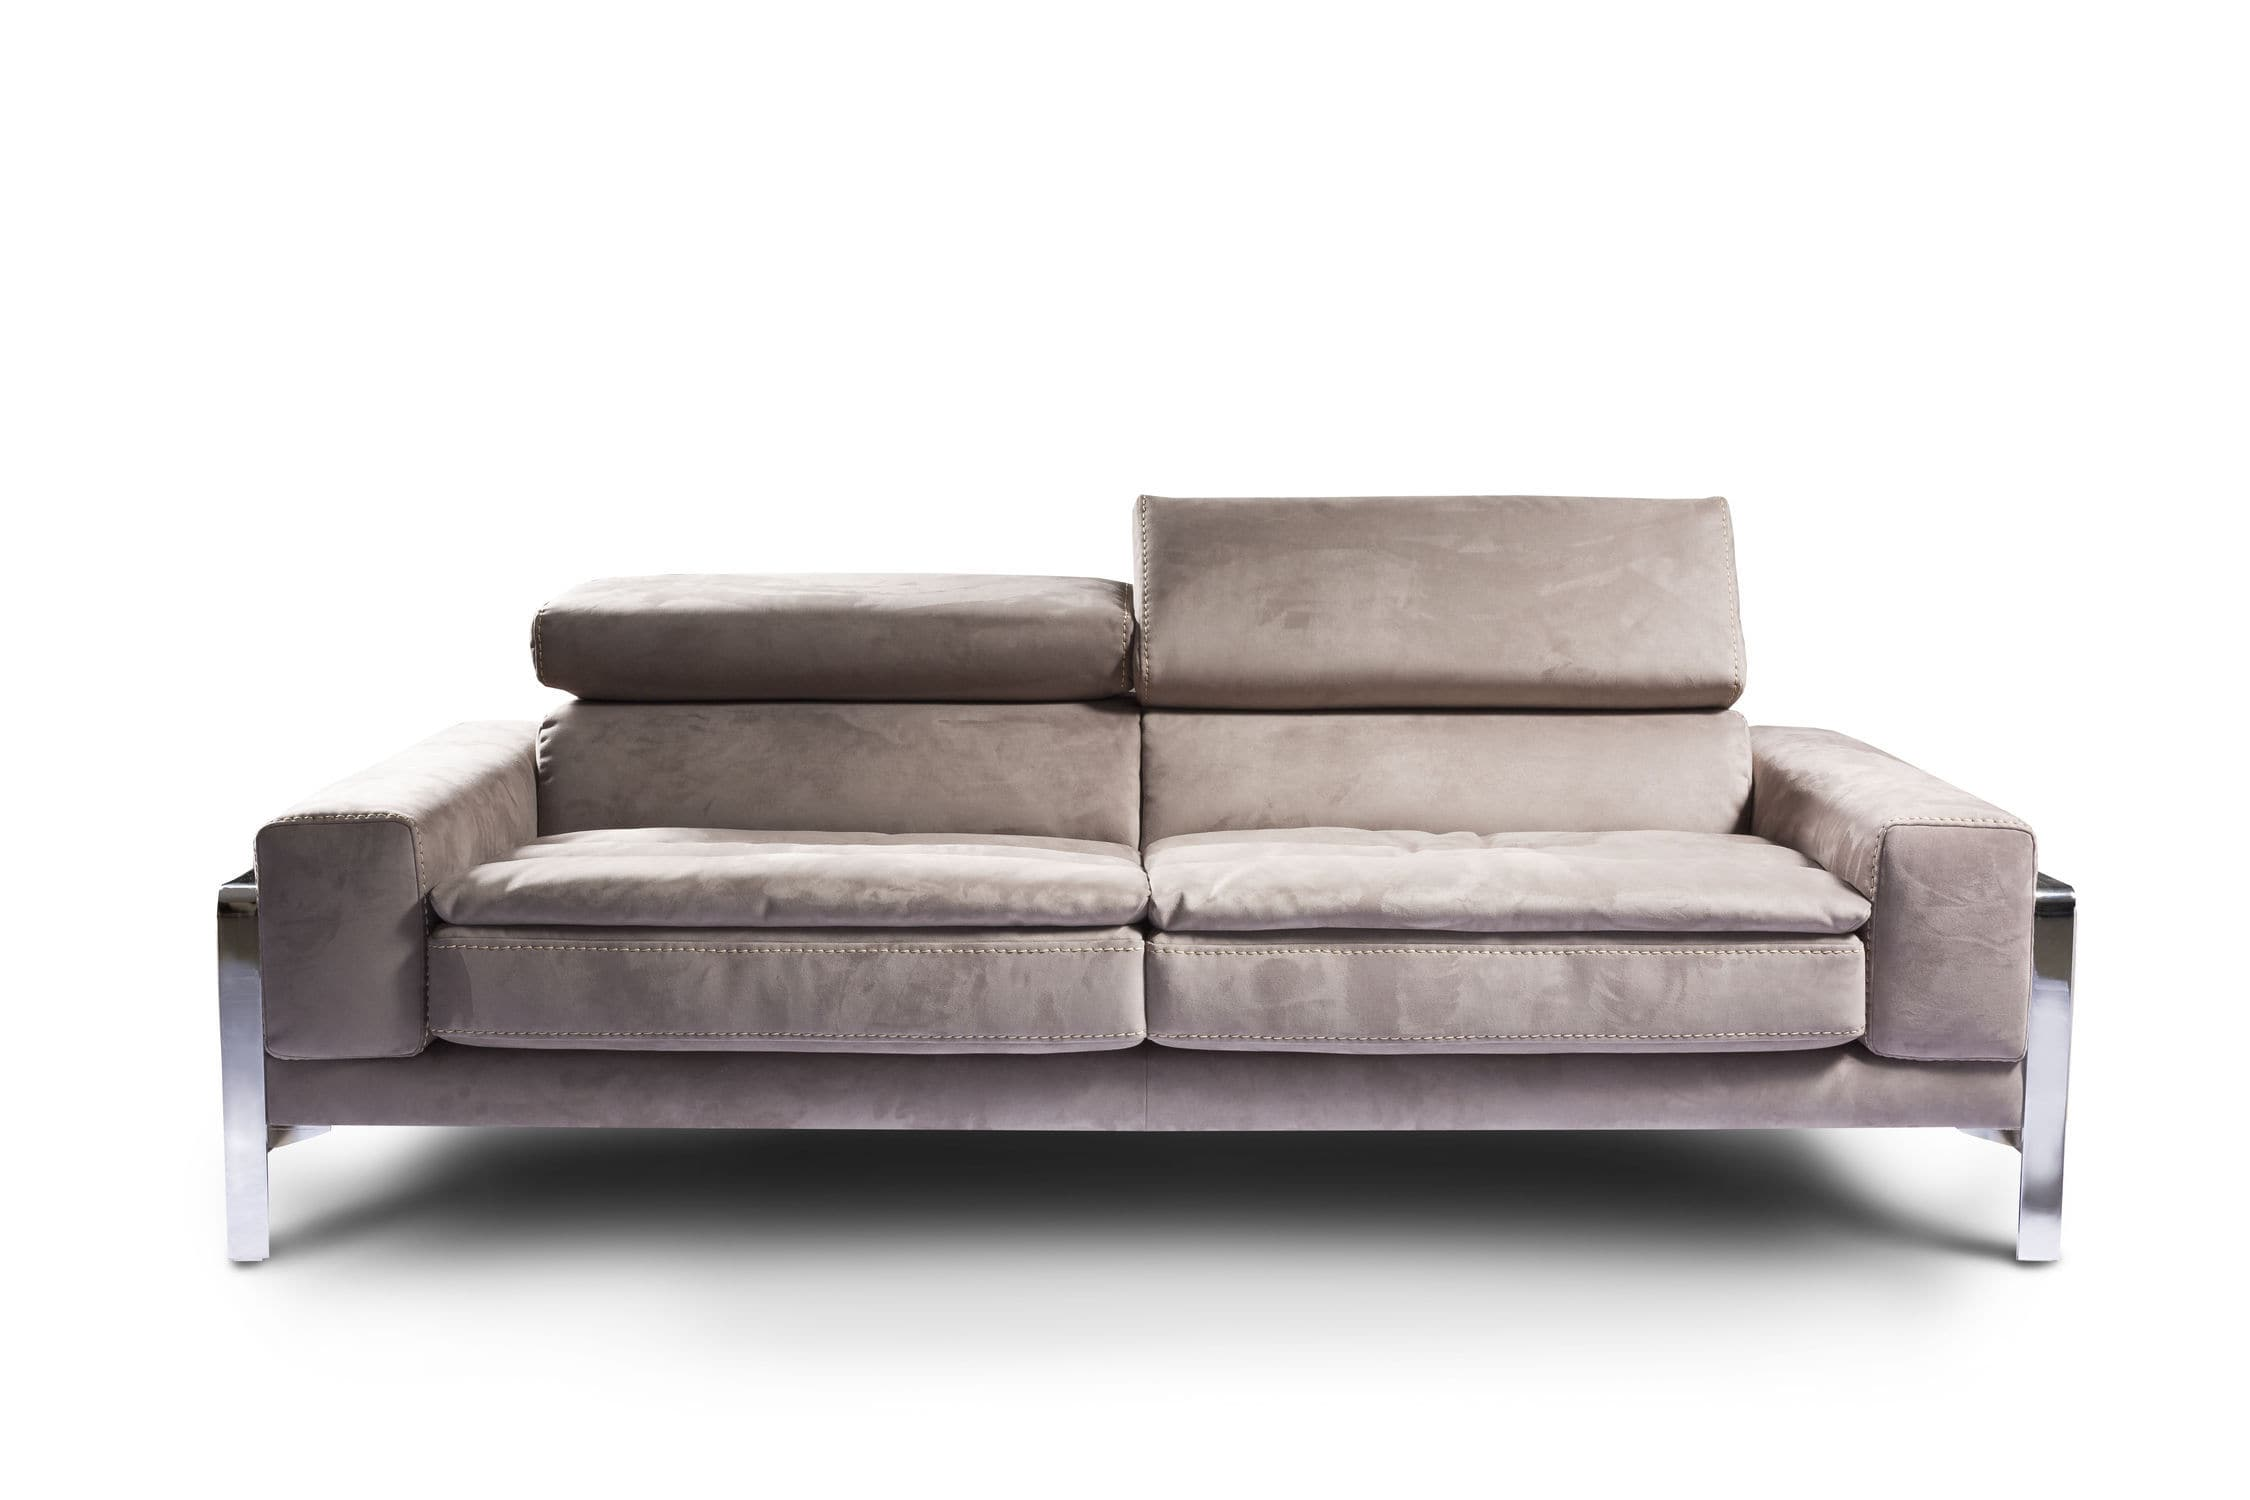 Contemporary sofa leather 3 seater beige PRISS Nieri